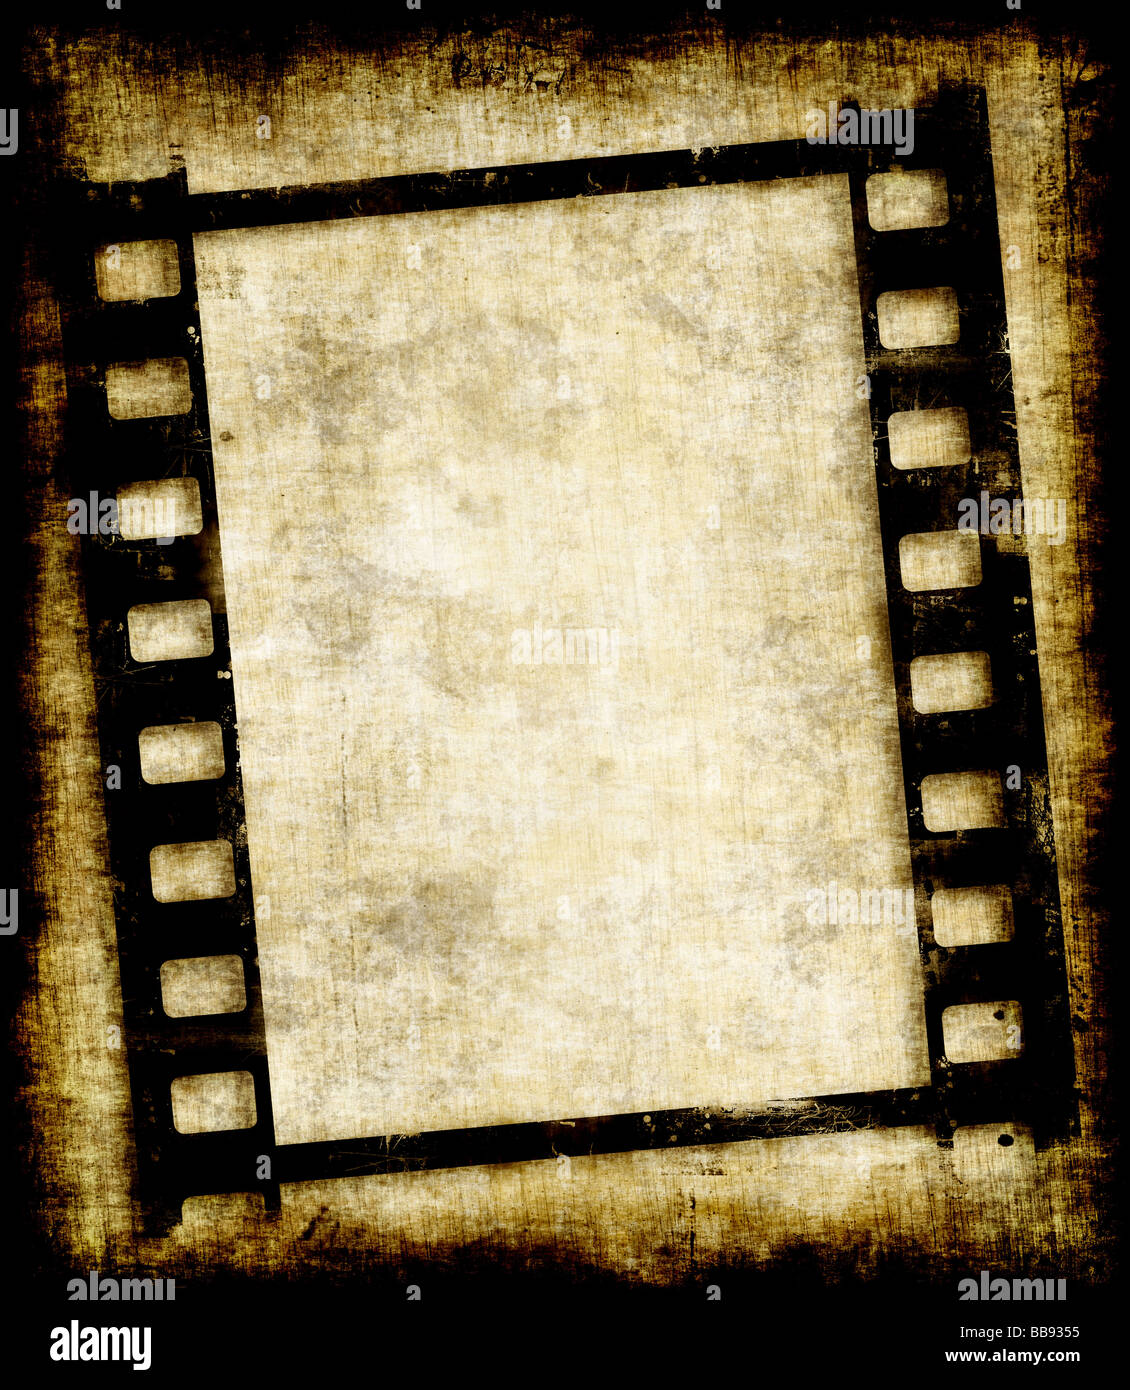 old grungy filmstrip or photo negative image - Stock Image